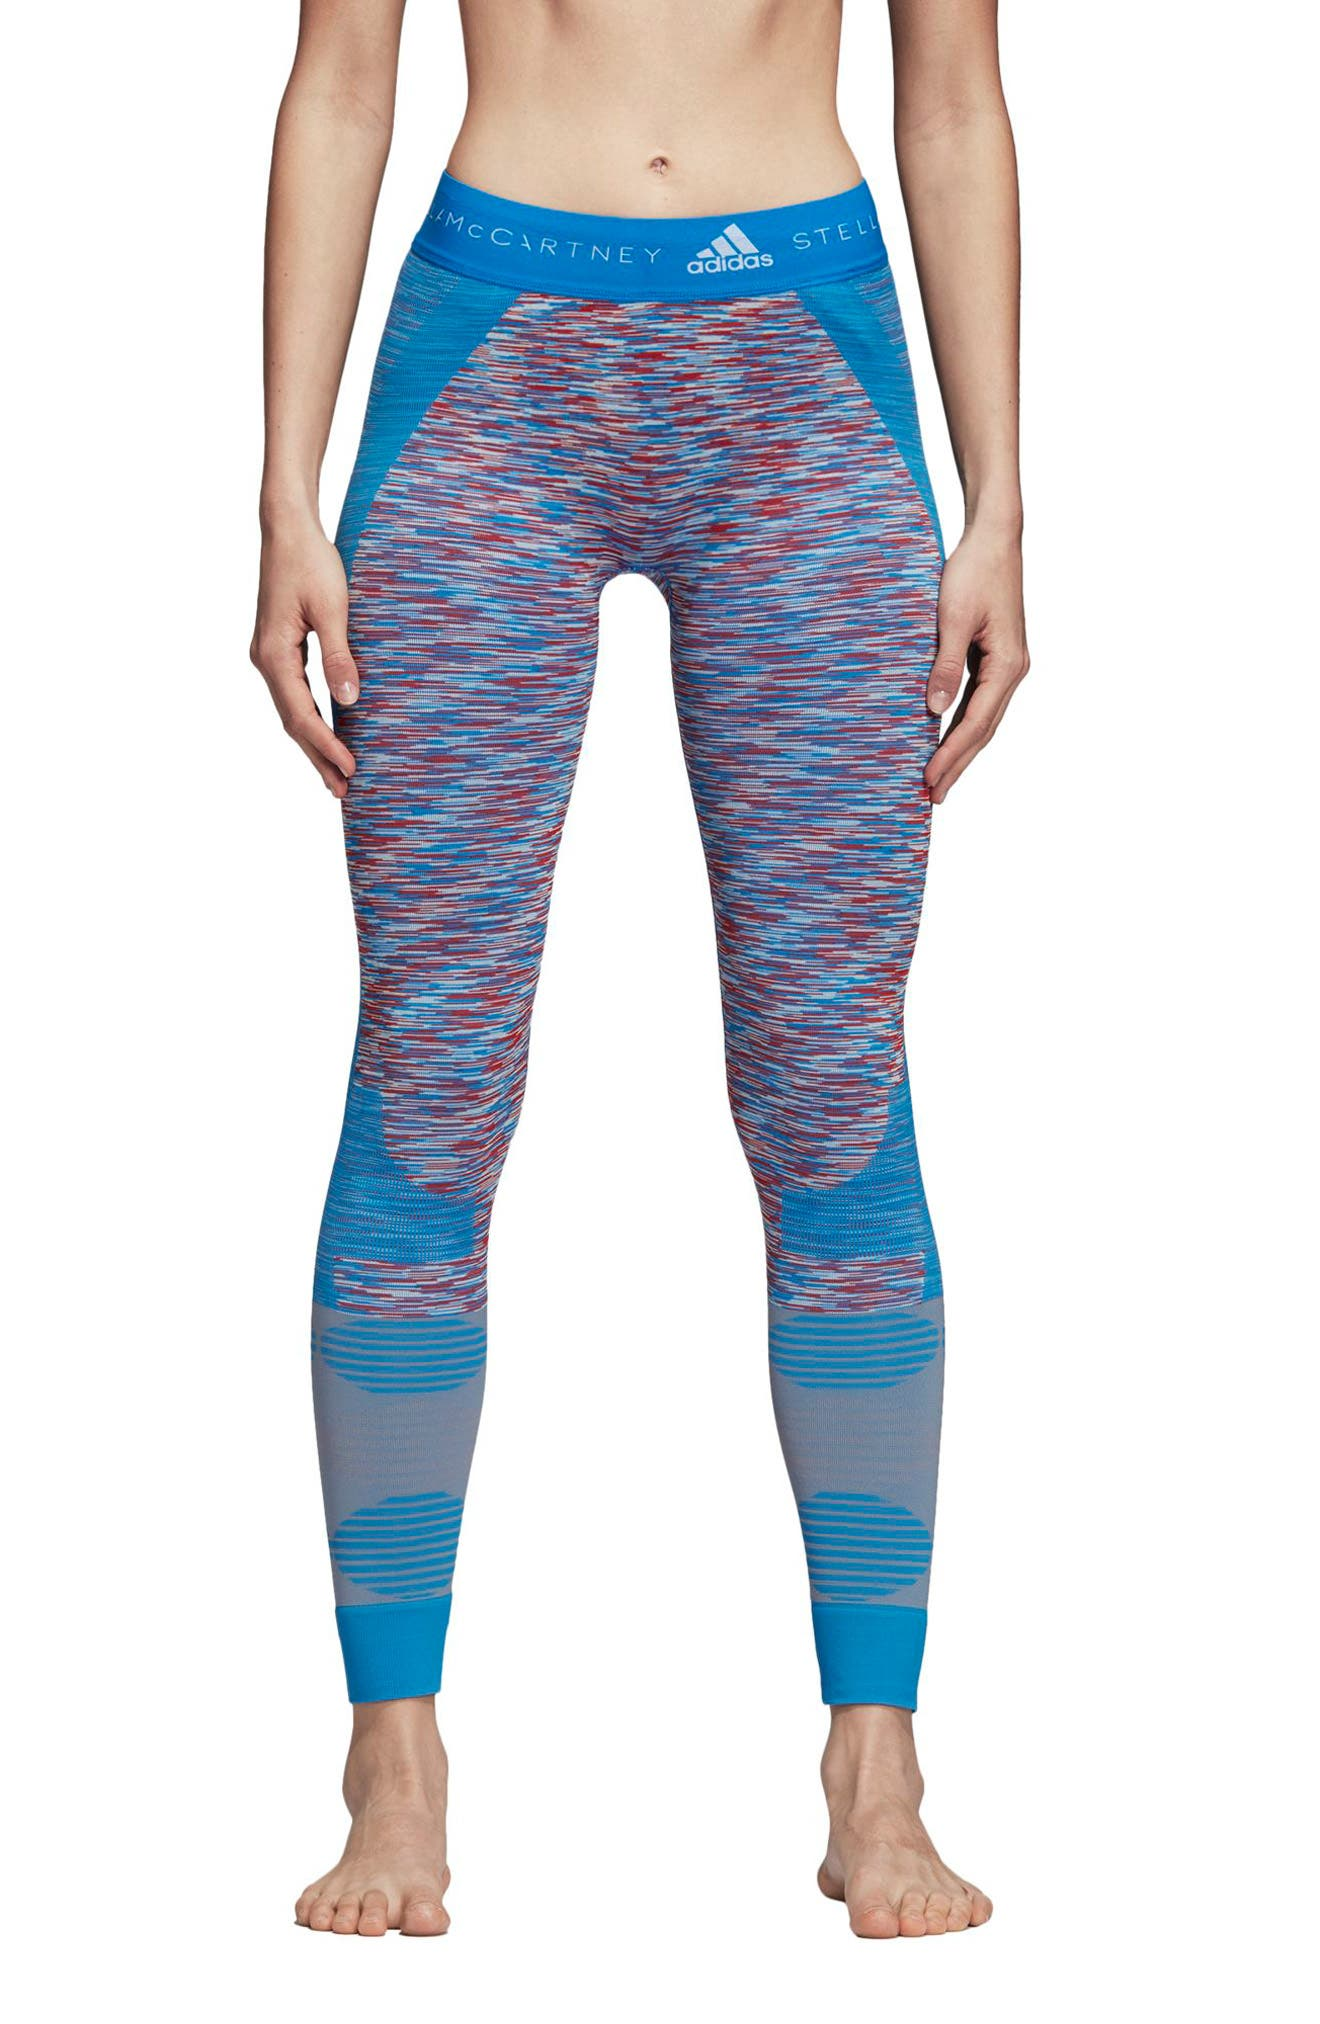 Yoga Seamless Space Dye Leggings,                         Main,                         color, 400